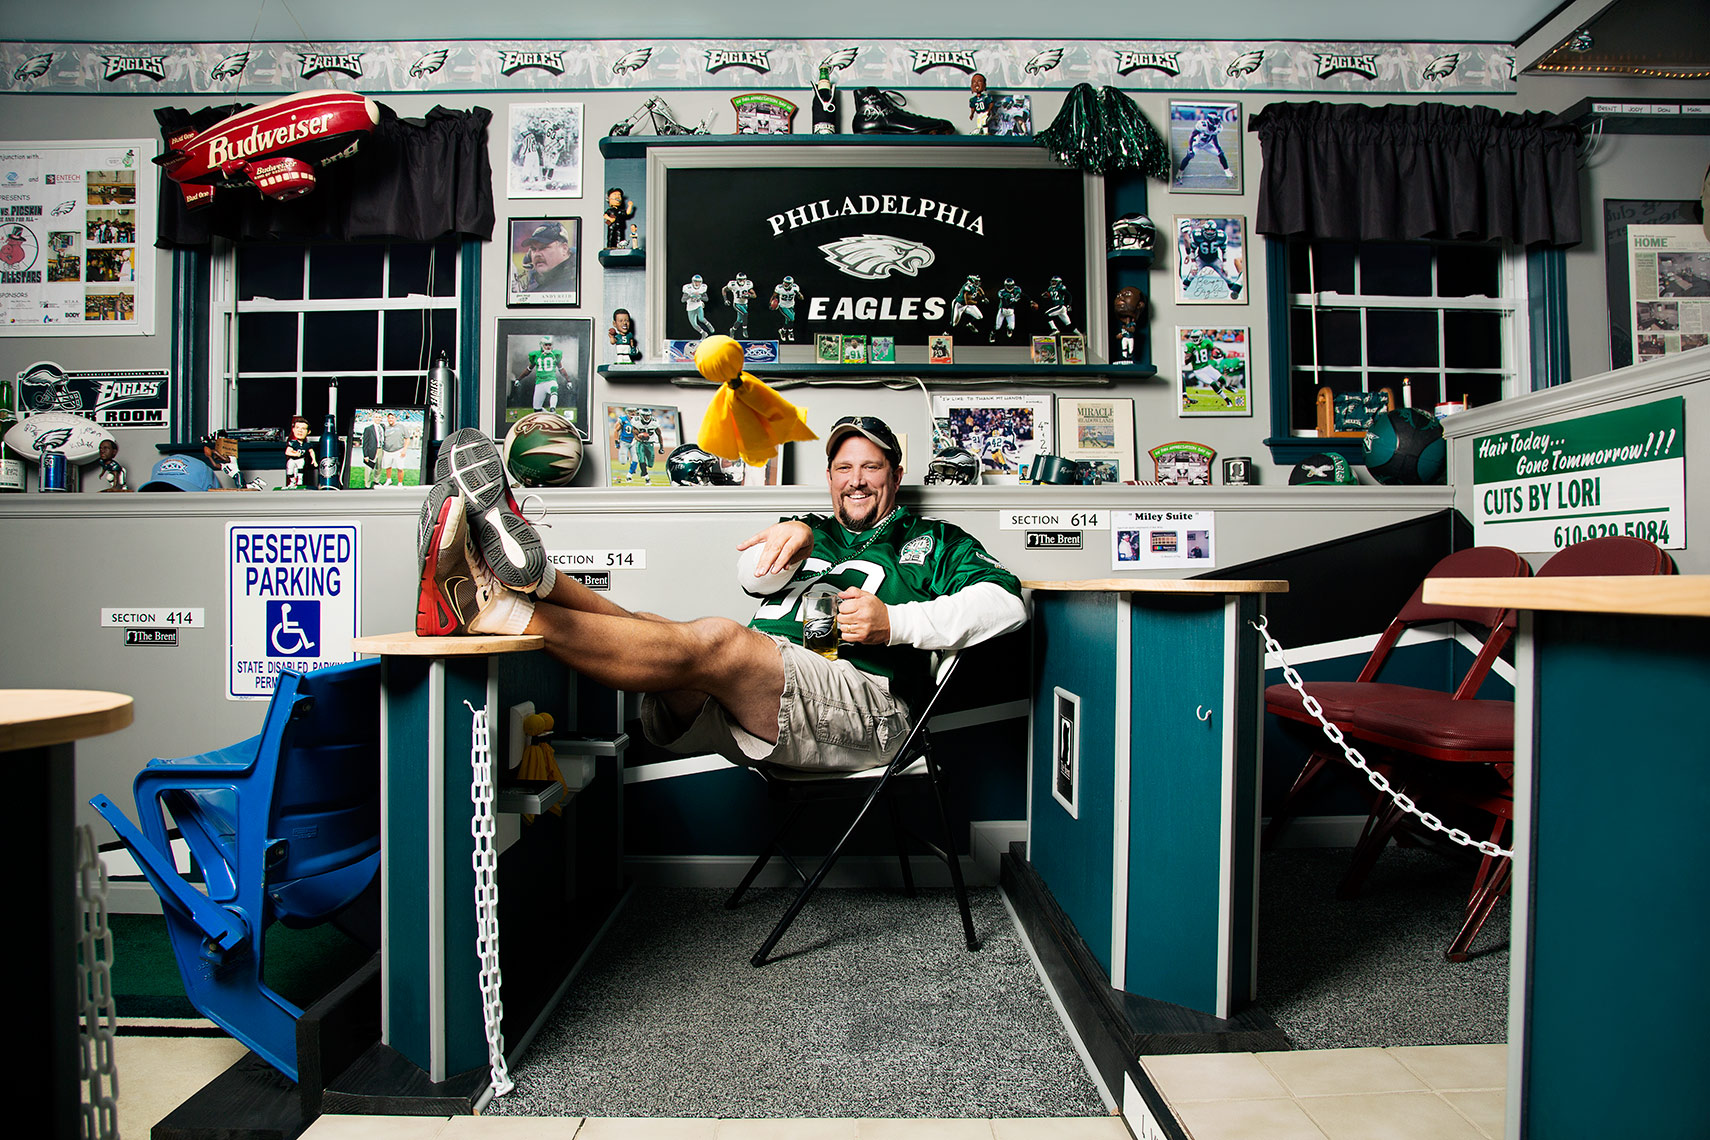 Sports Photographer STEVE BOYLE - Philadelphia Eagles Fans - NFL Football